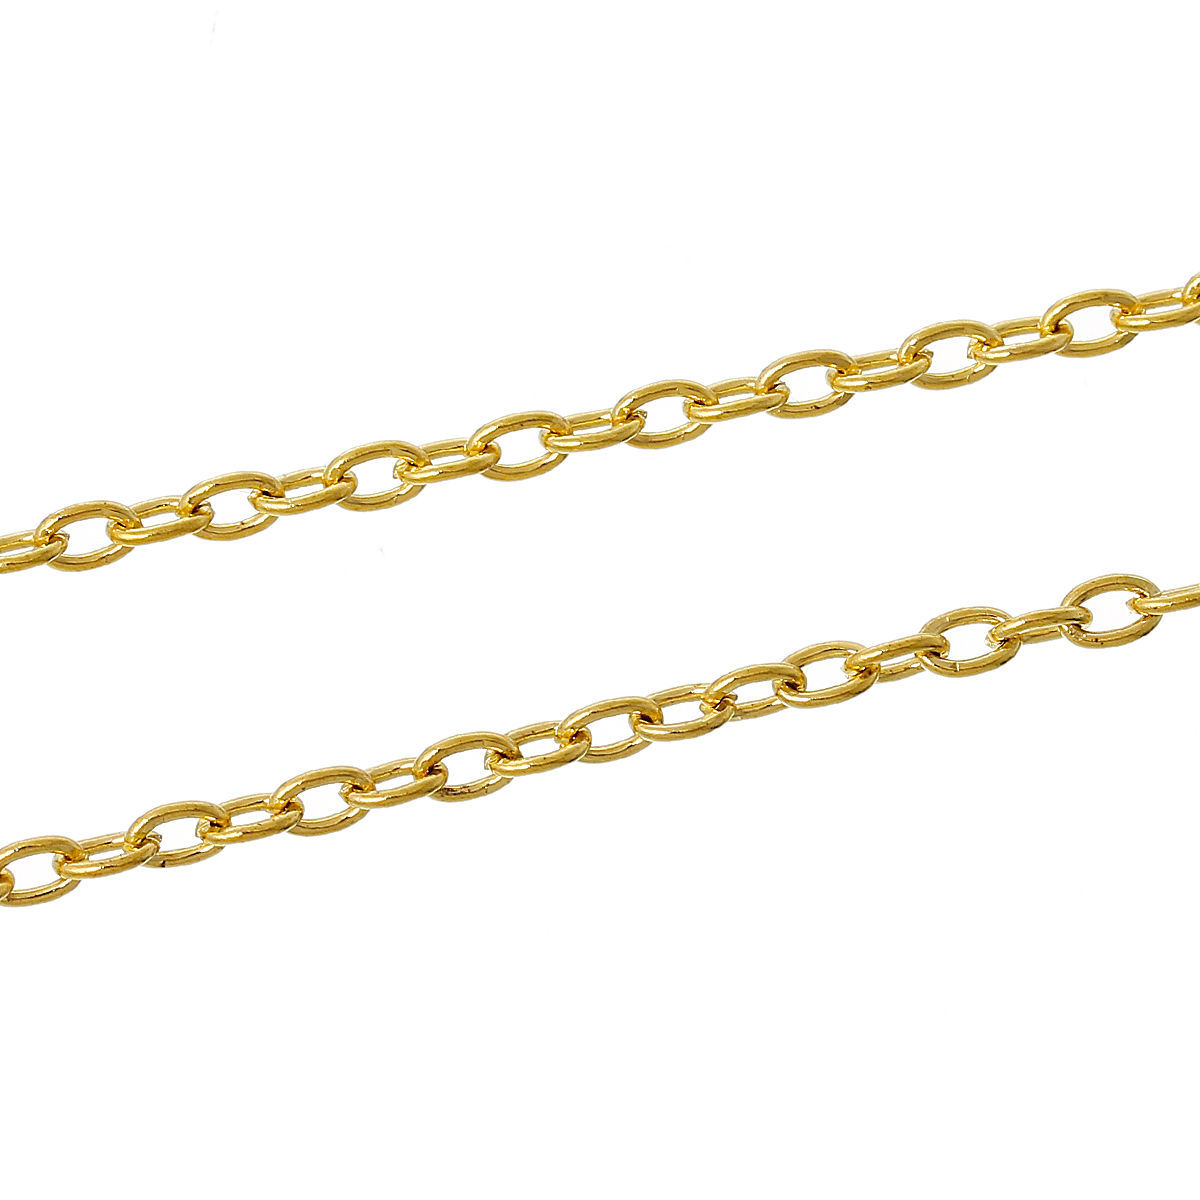 3ft Stainless Steel Findings Rolo Link opened Cable Chains 2-6 mm Jewelry making